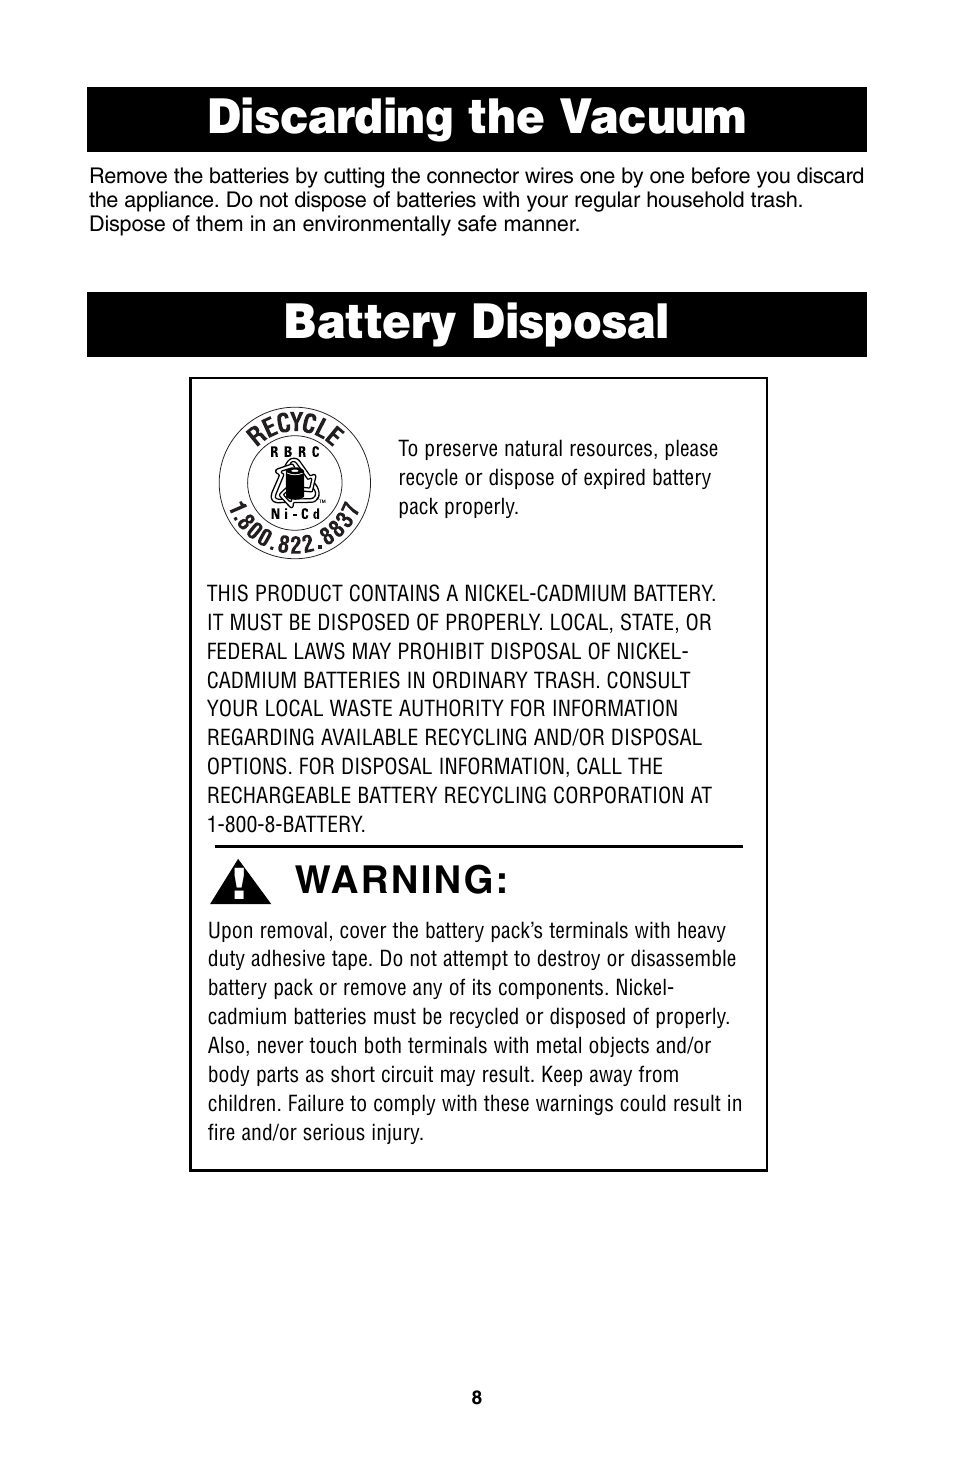 medium resolution of discarding the vacuum battery disposal warning oreck qs110 user manual page 9 12